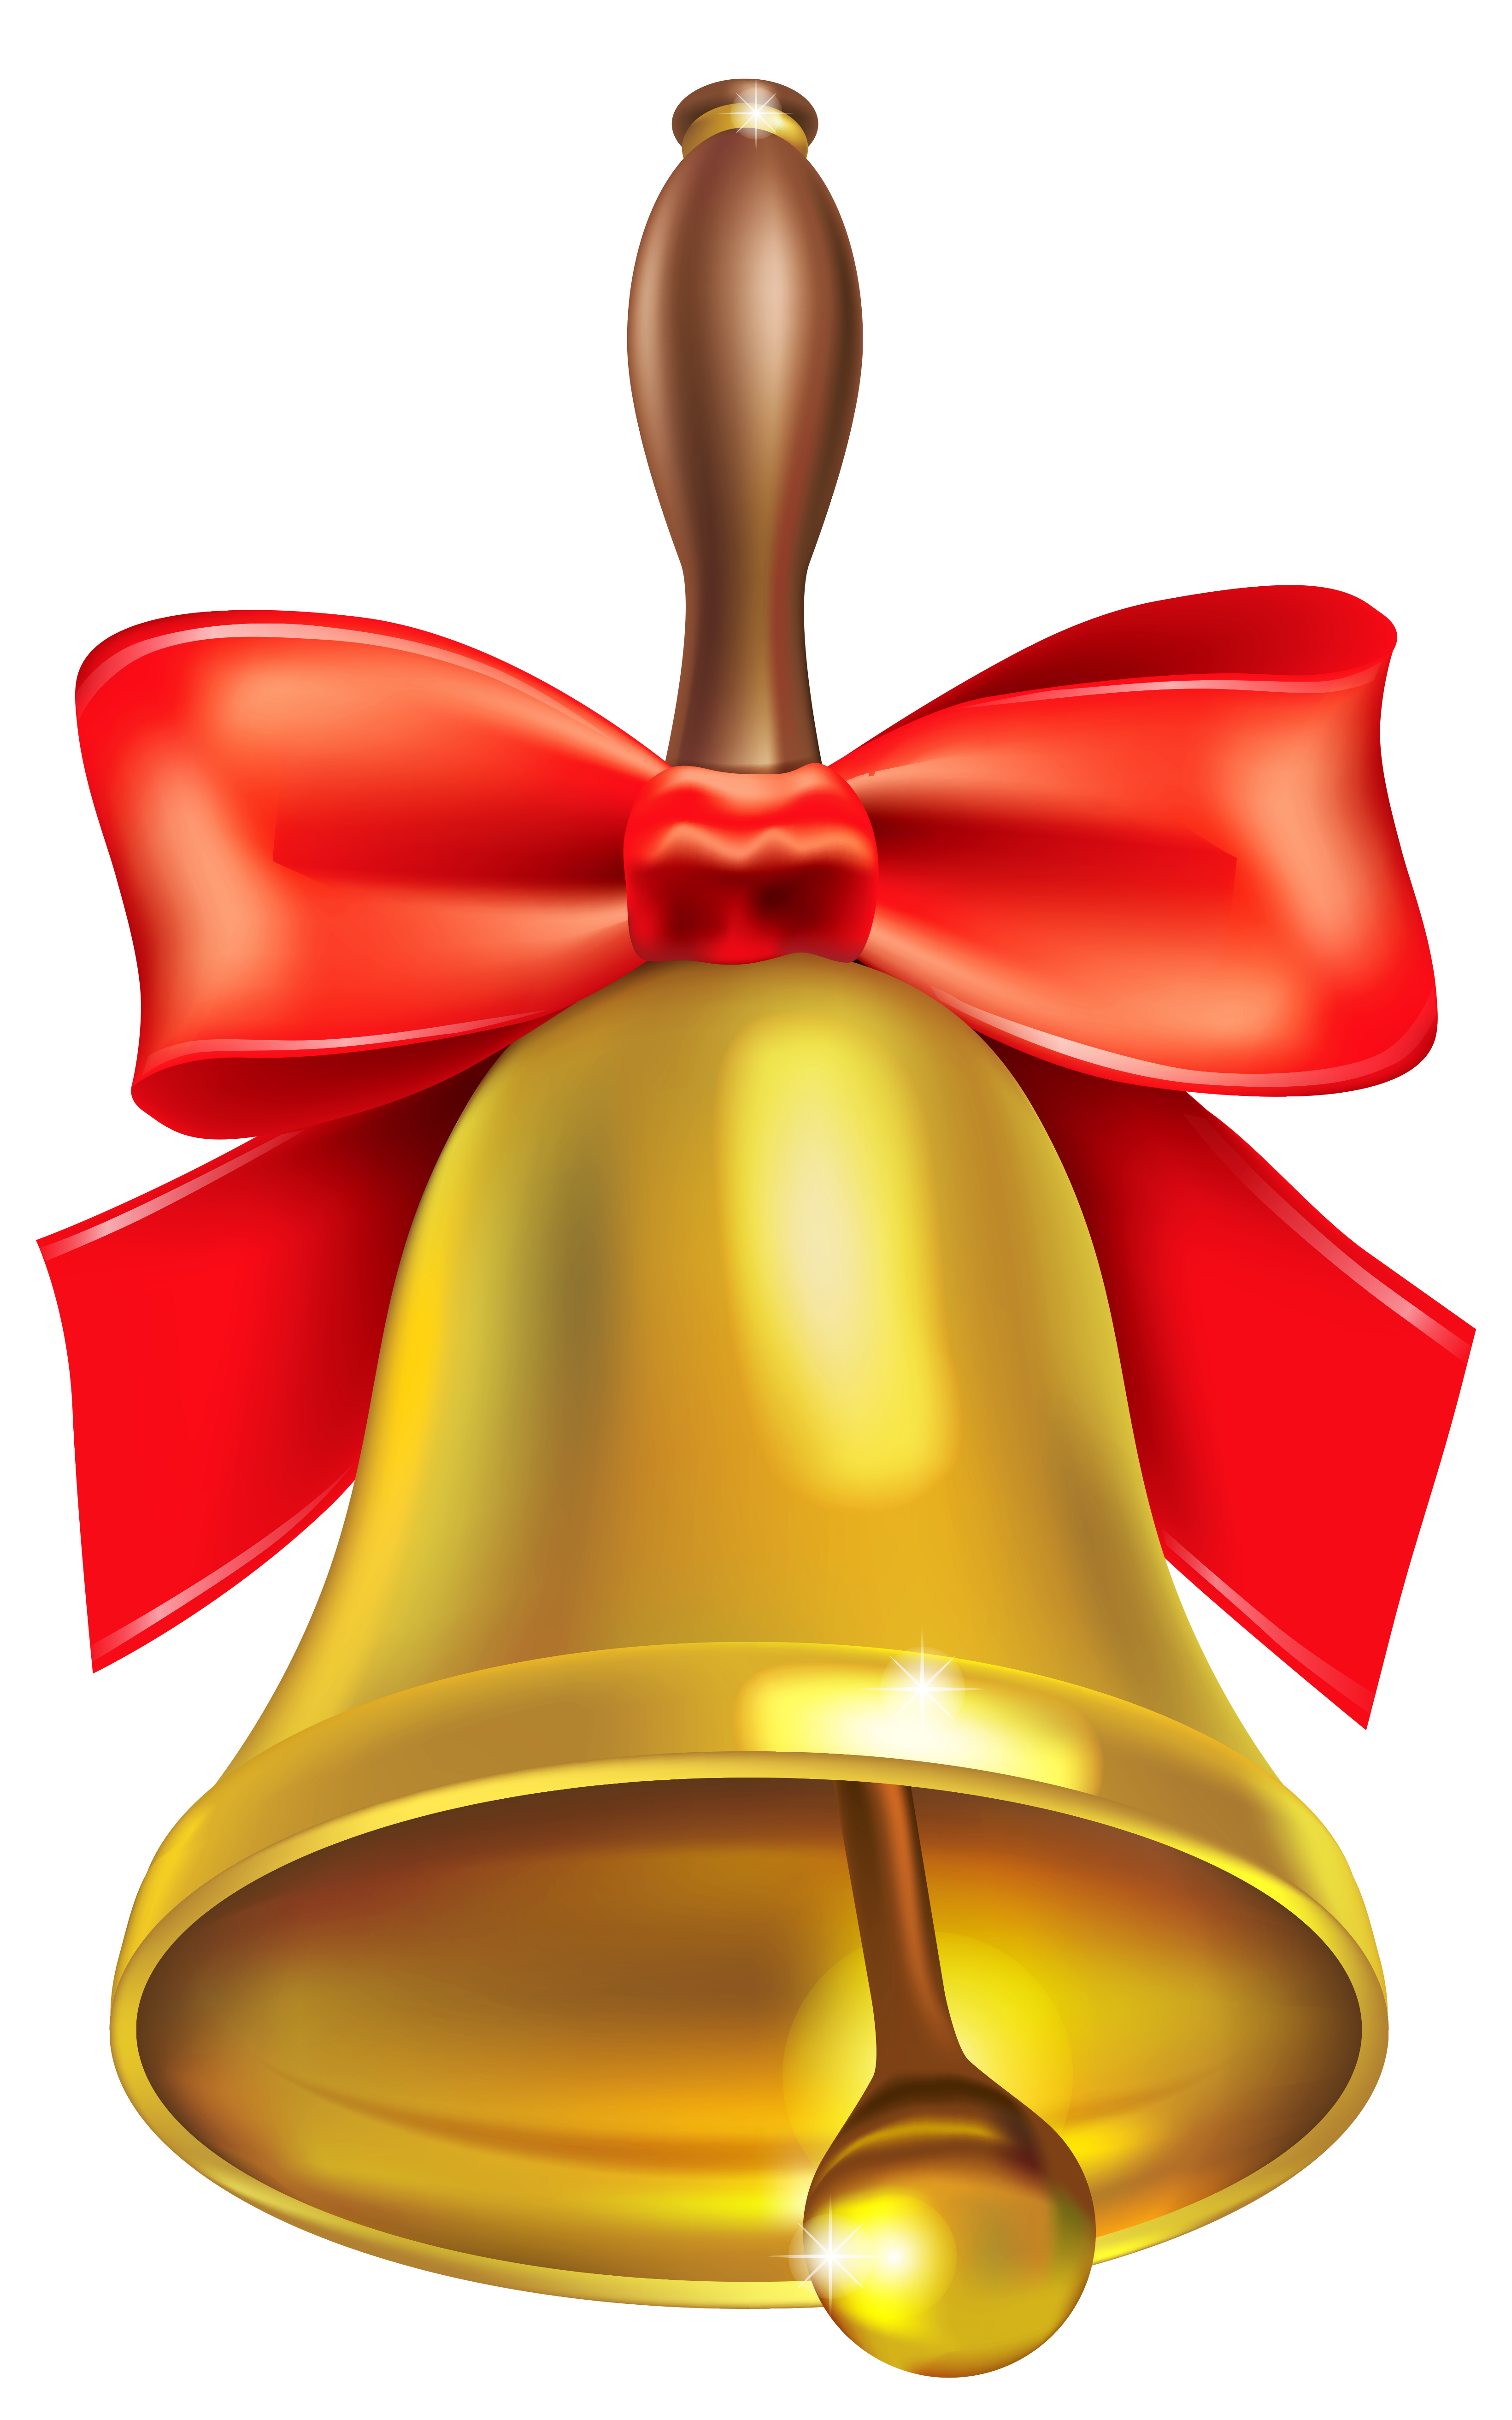 Gold School Bell PNG Clipart Picture Free clip art, Clip